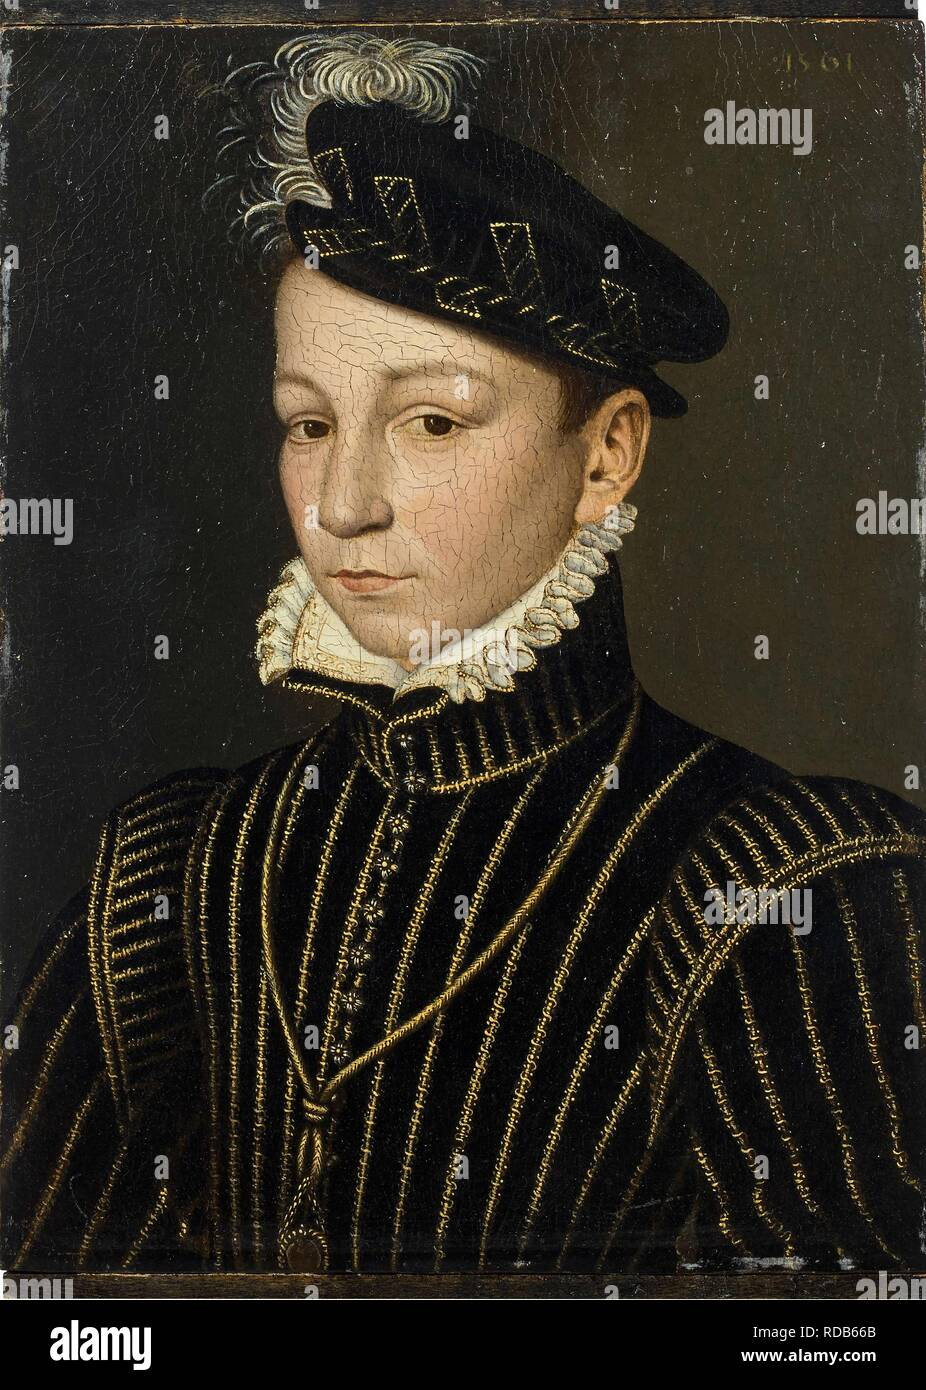 Portrait of King Charles IX of France (1550-1574). Museum: PRIVATE COLLECTION. Author: CLOUET, FRANÇOIS. Stock Photo